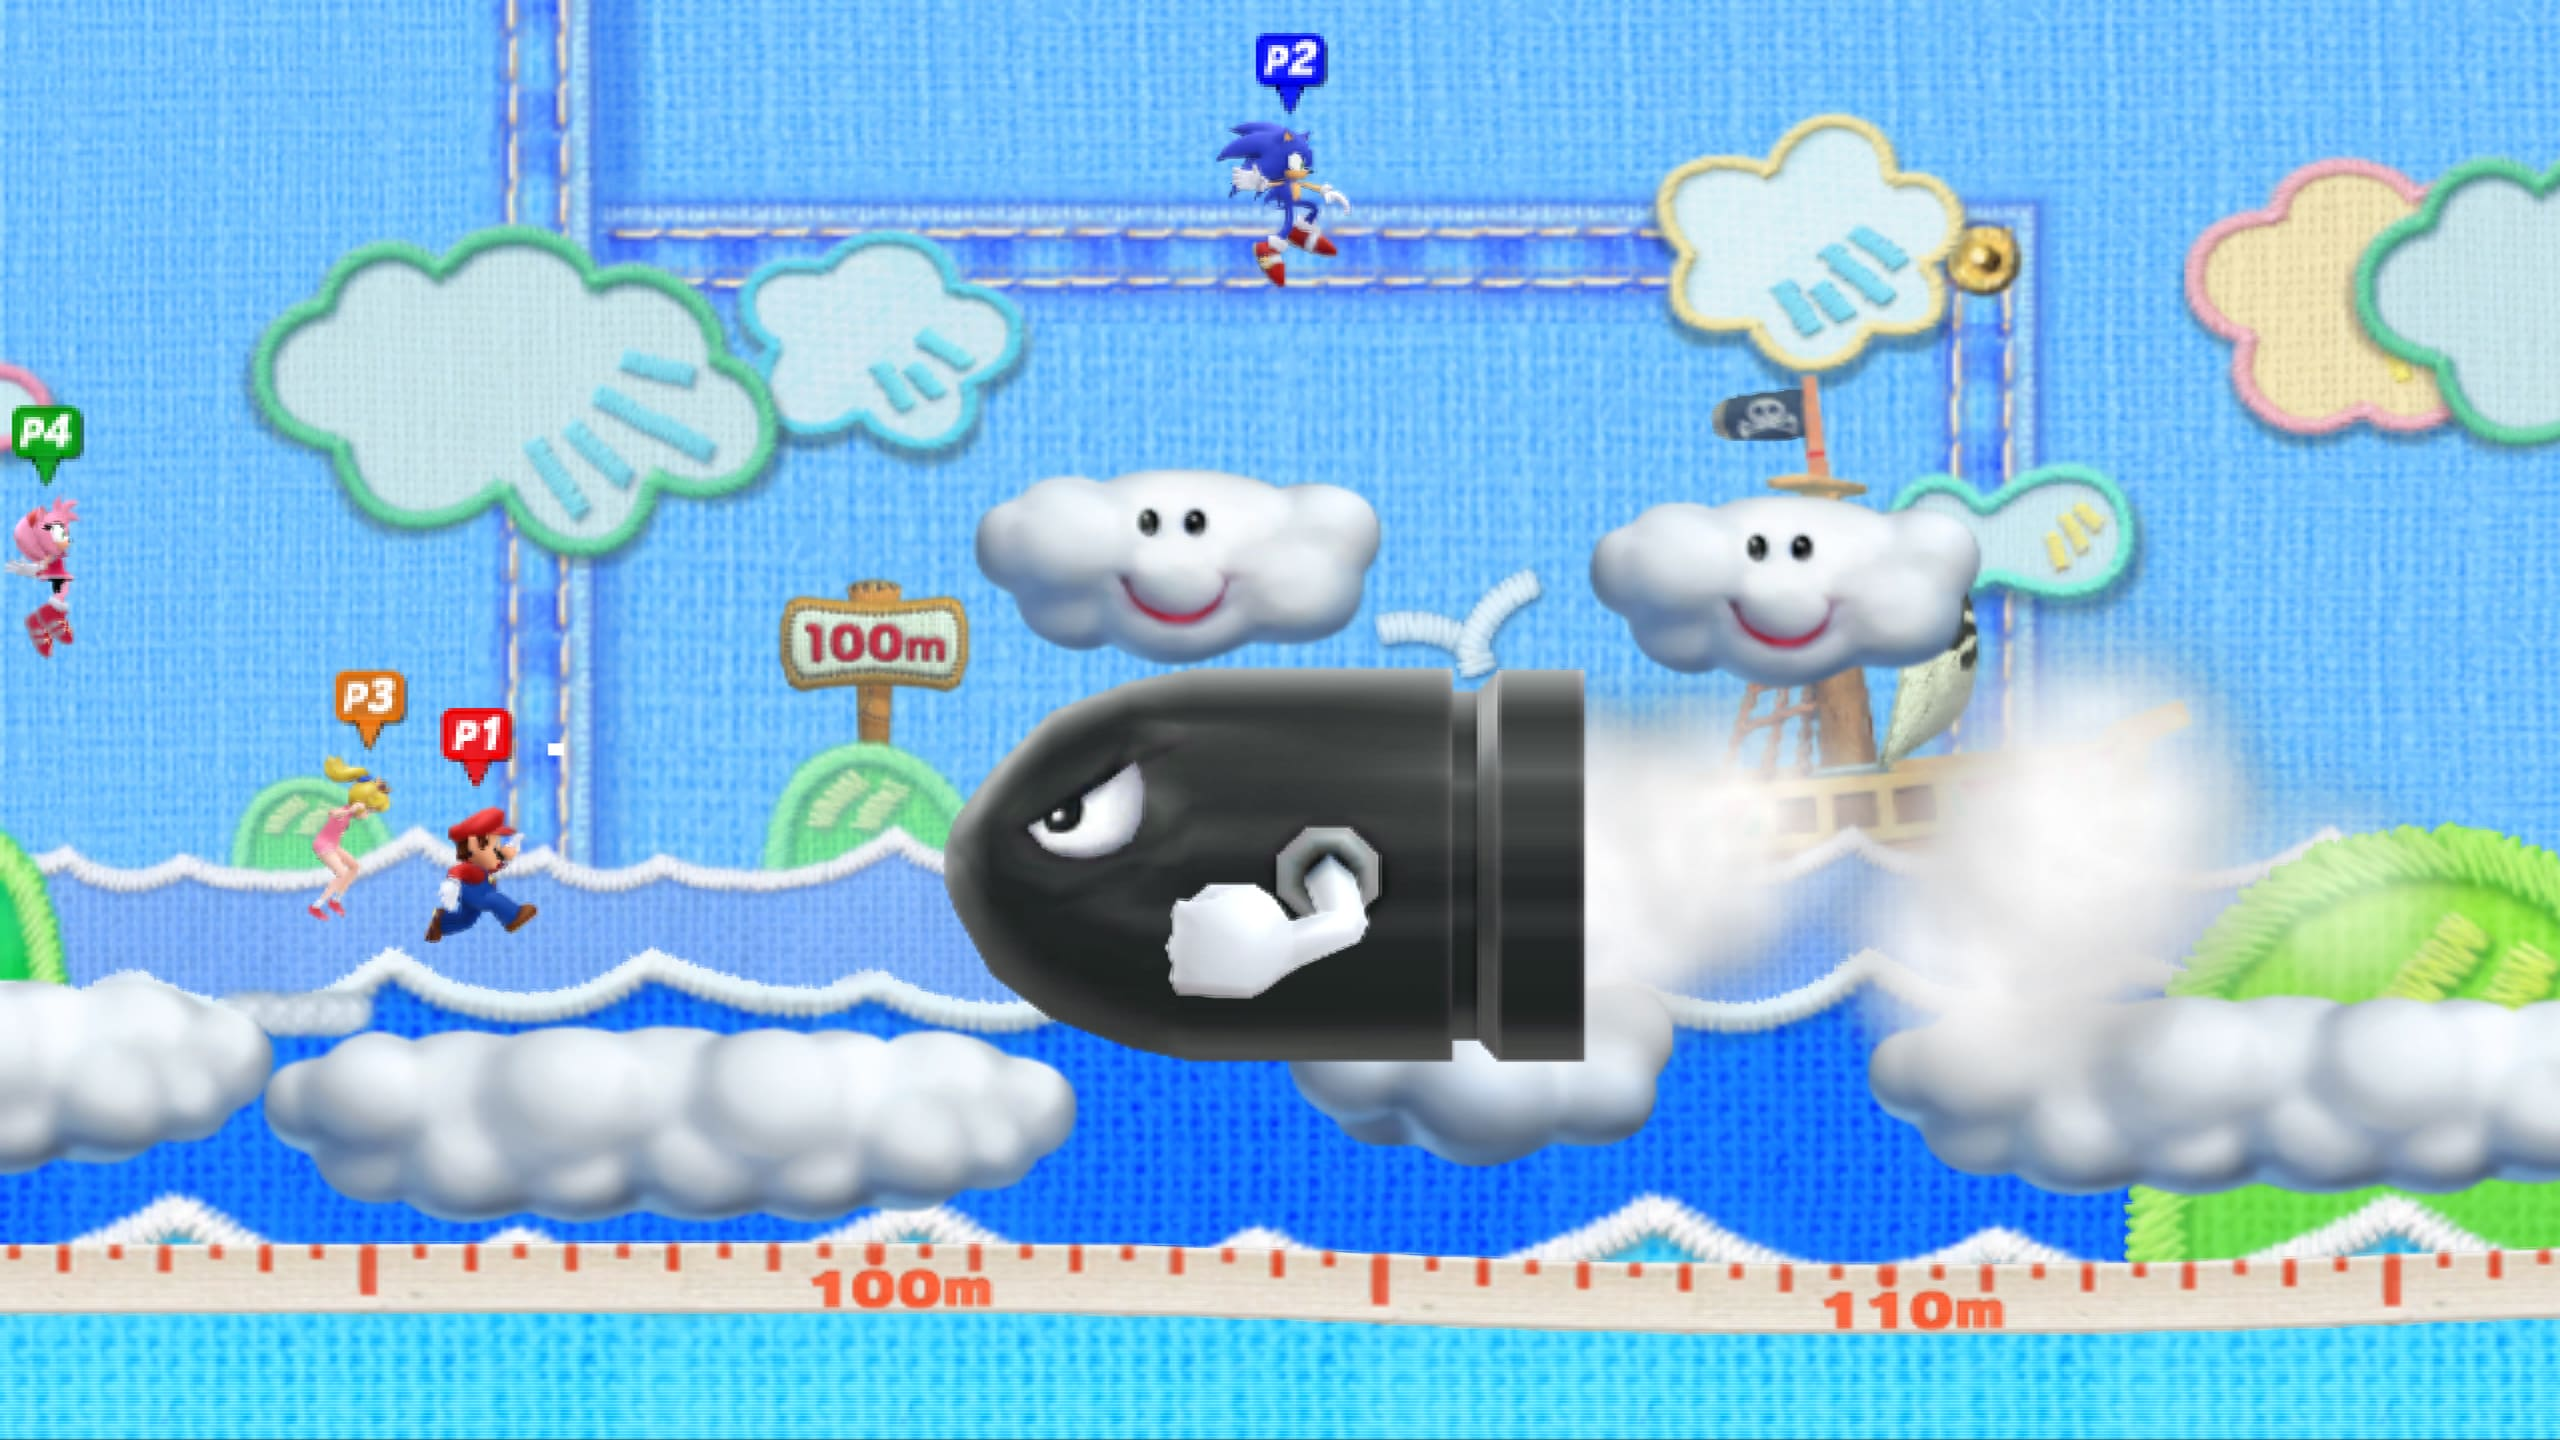 Mario & Sonic At The London 2012 Olympic Games Review Screenshot 4